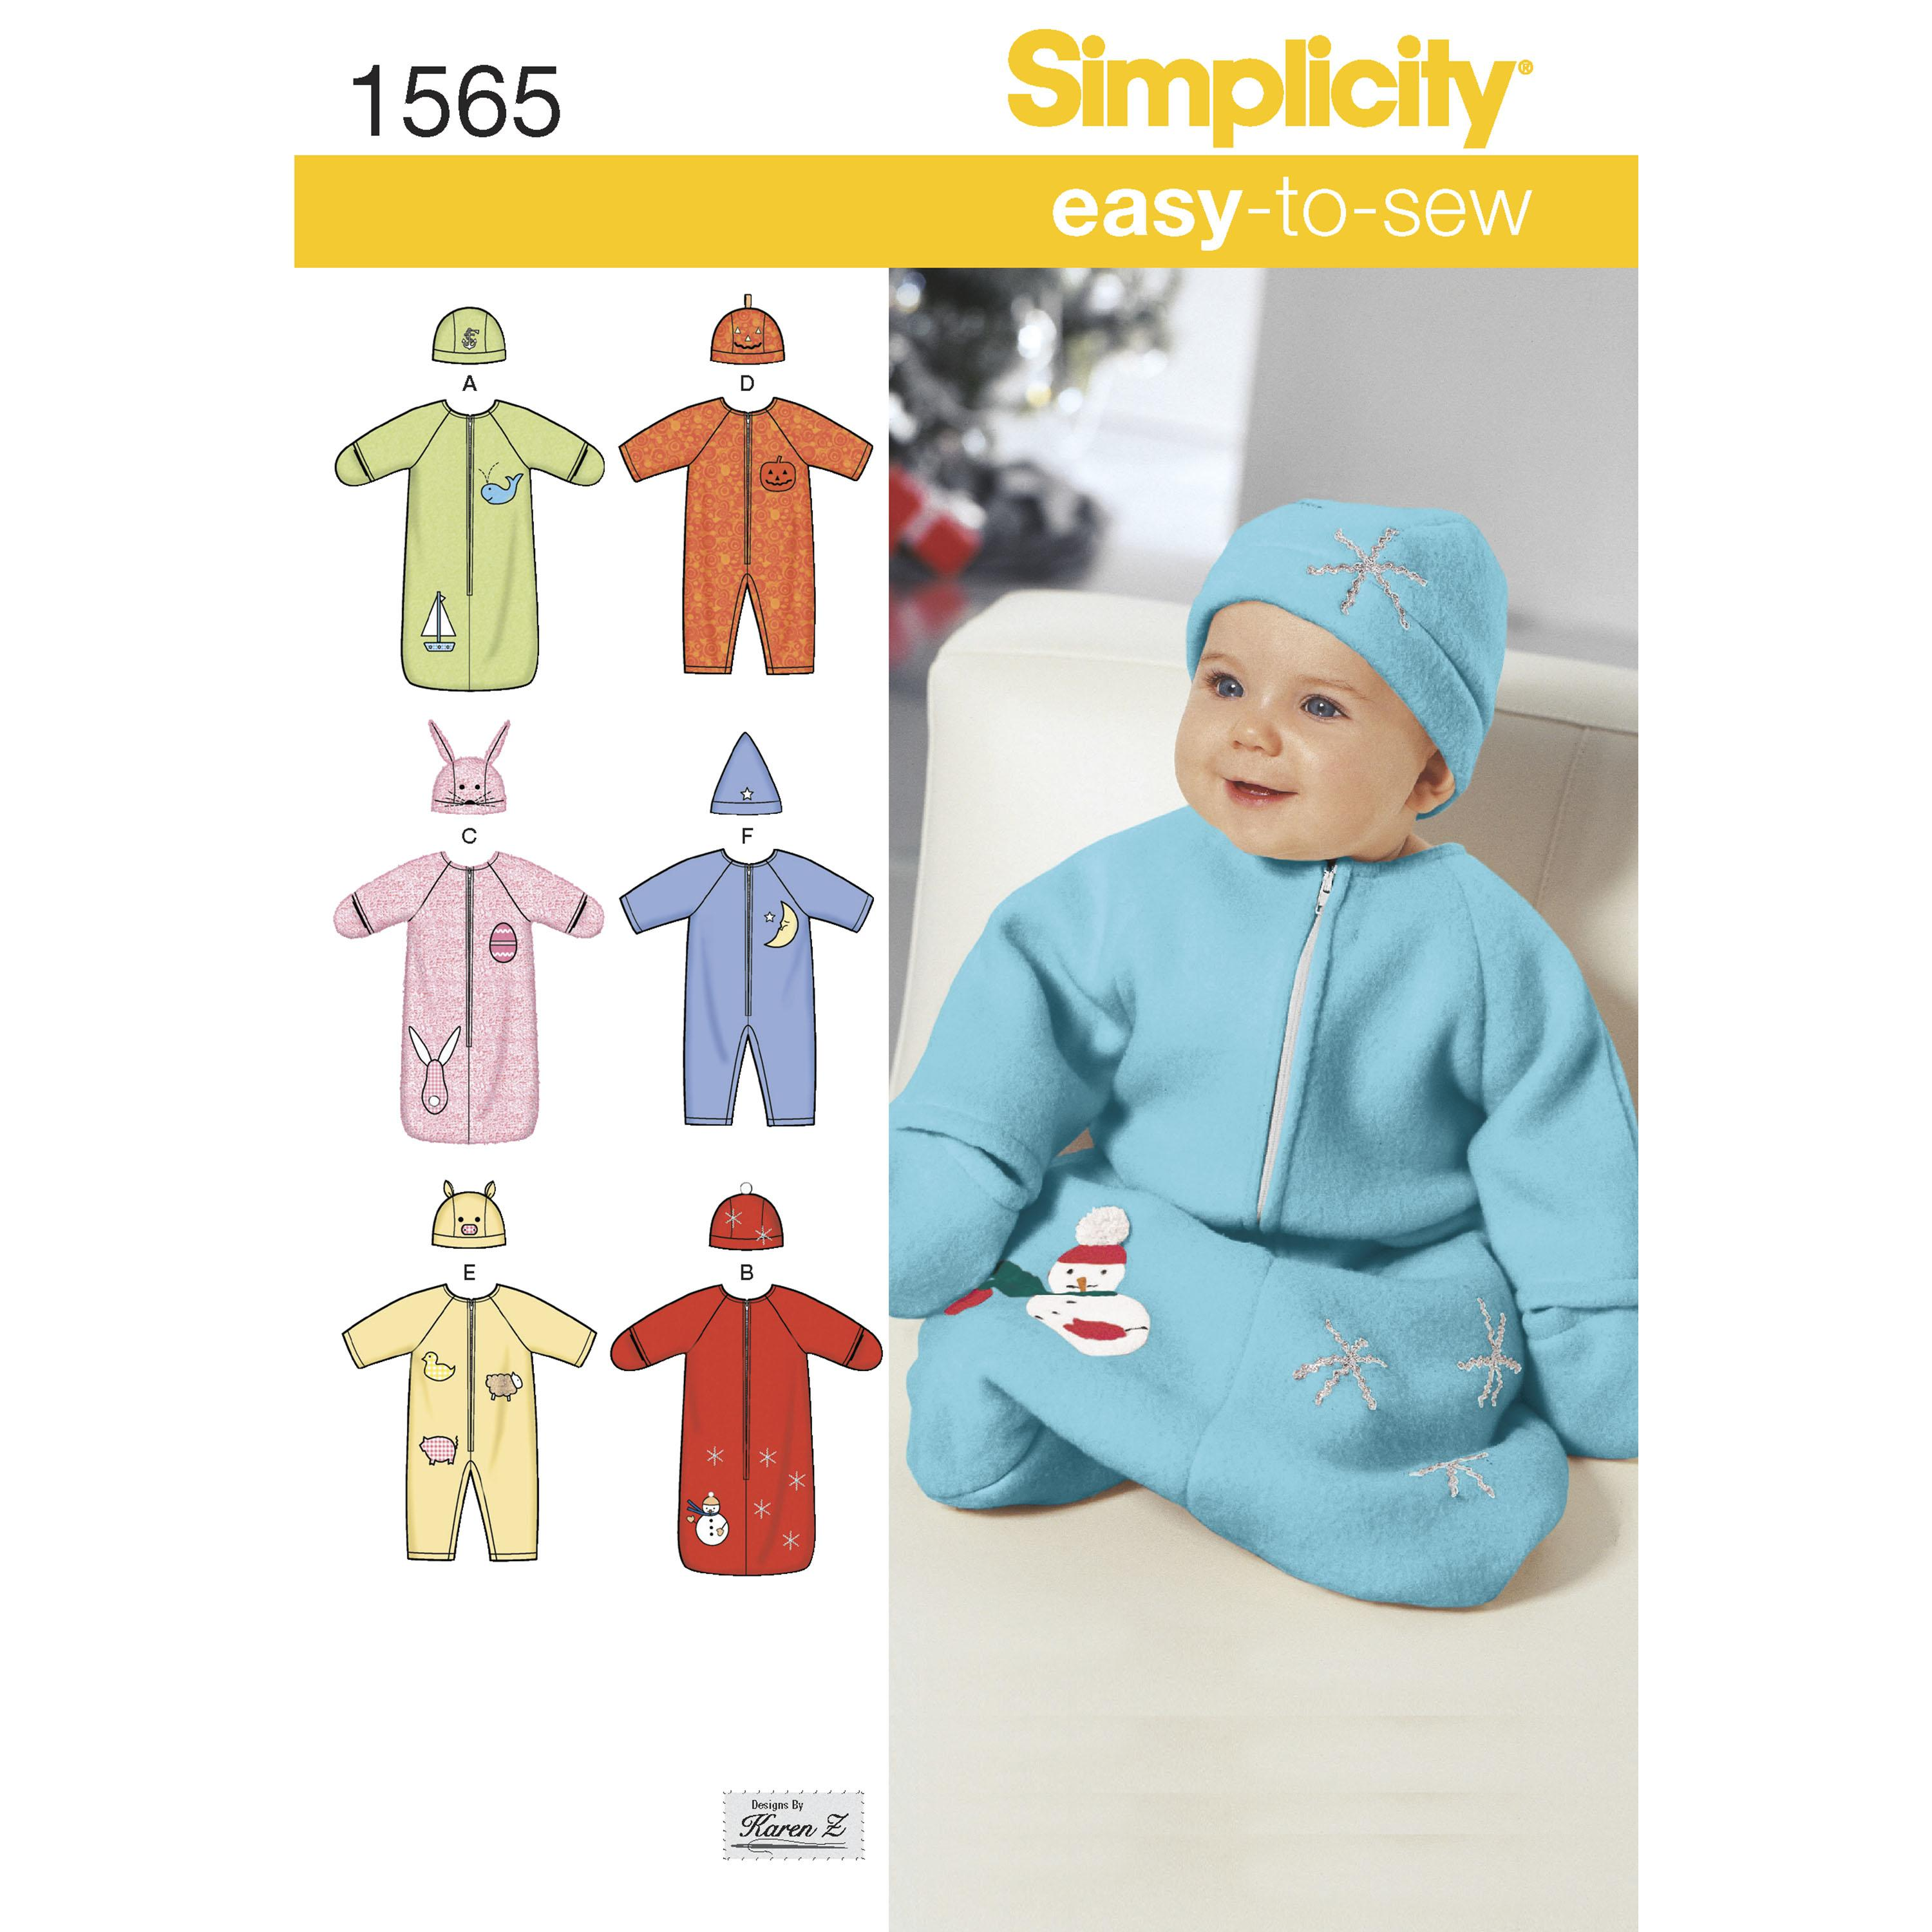 Simplicity S1565 Babies' Bunting, Romper and Hats